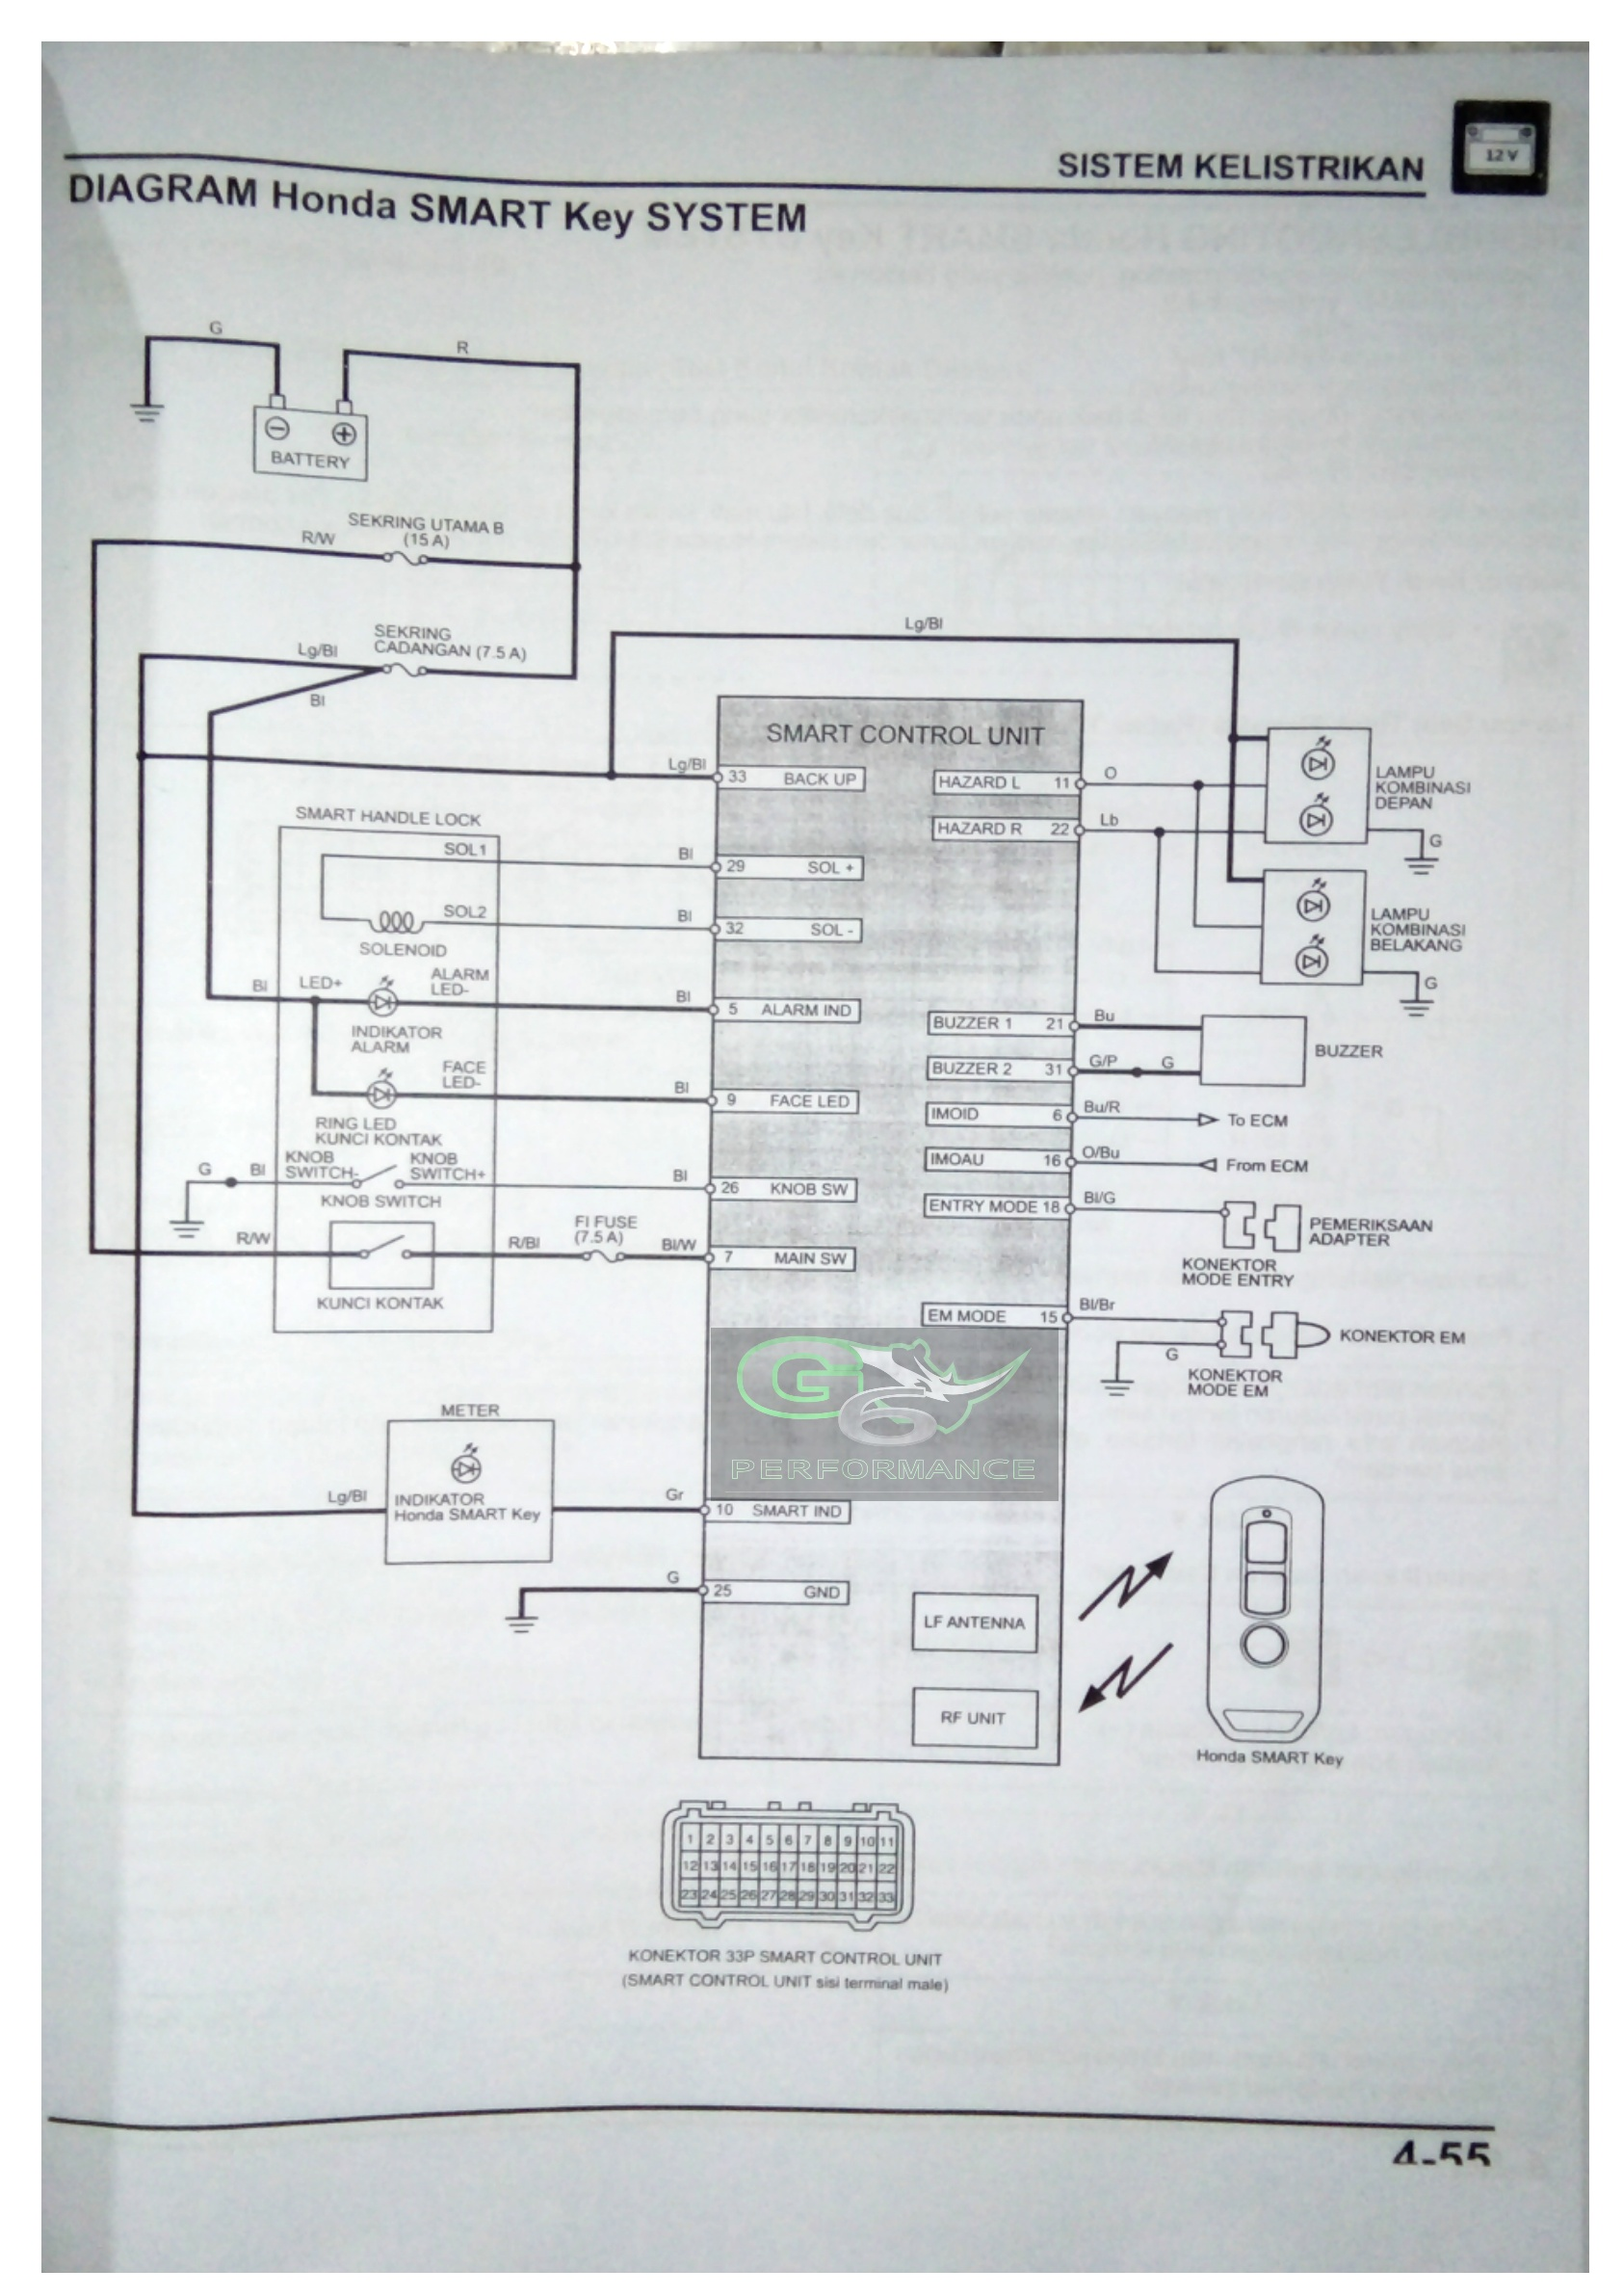 hight resolution of electric wiring system diagram honda new pcx 150 2018 gisix s blog wiring diagram honda pcx